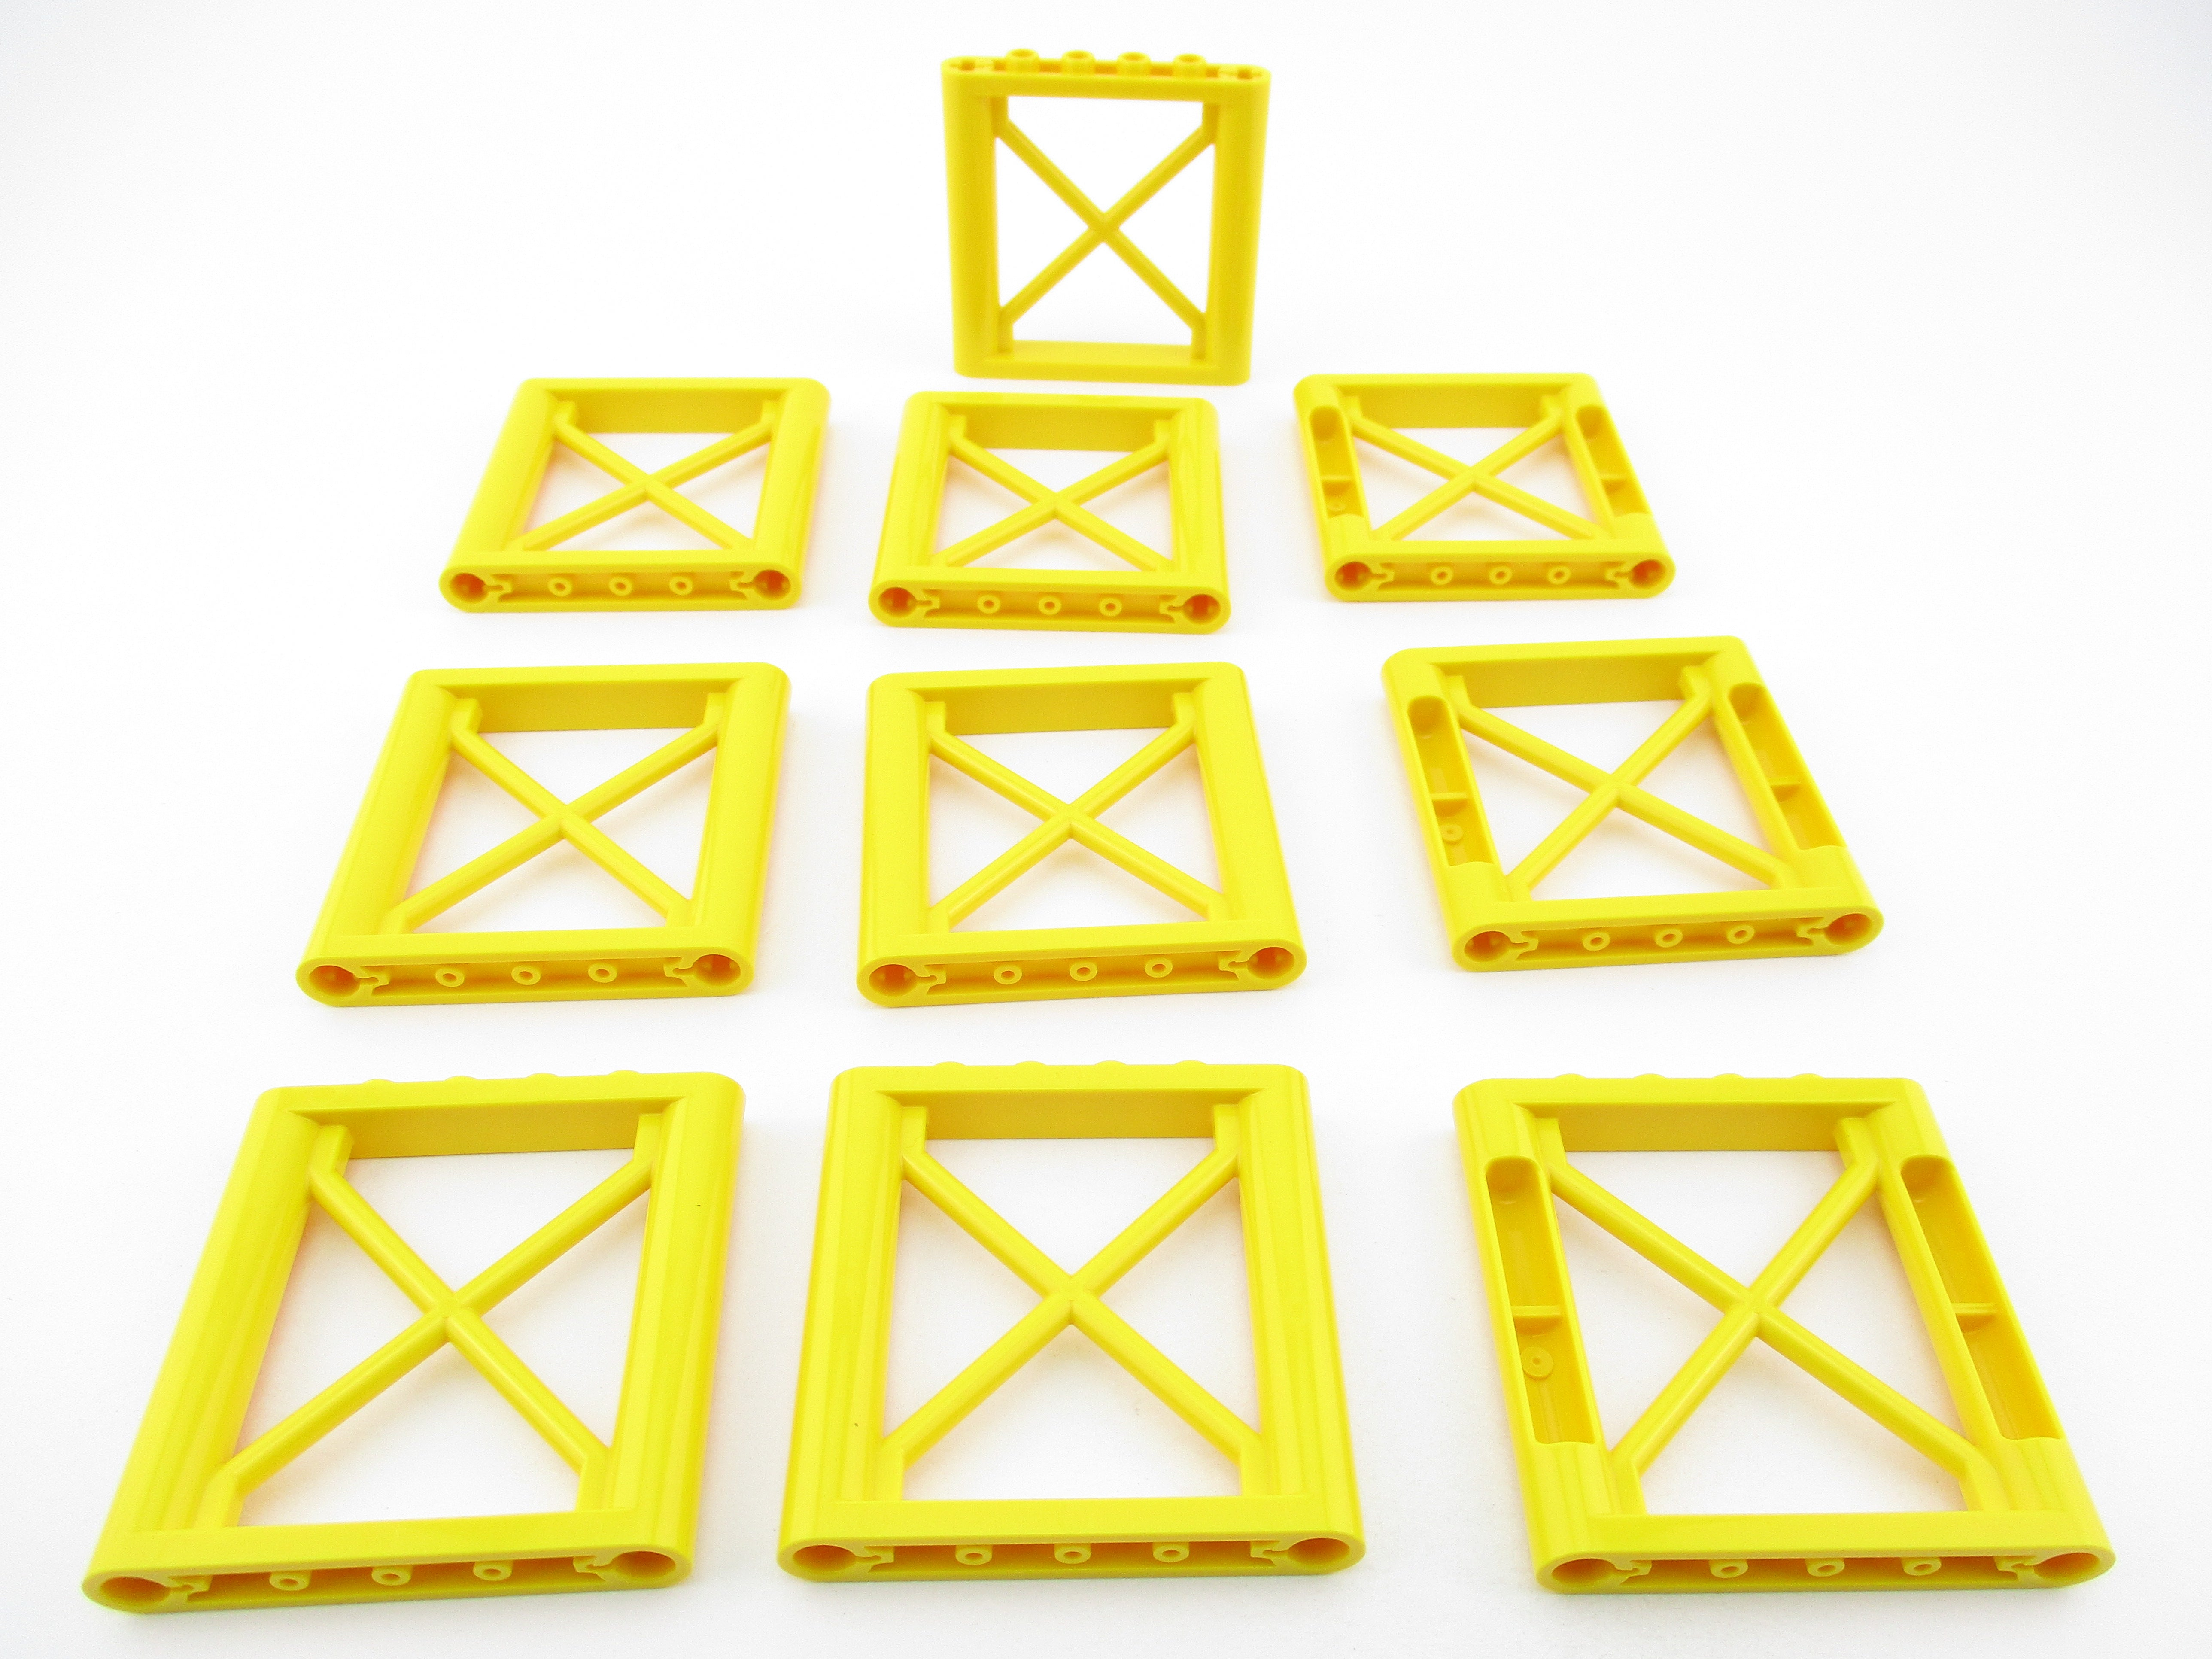 LEGO Yellow Support 1x6x5 Girder Rectangular Lot of 10 Parts Pieces 64448